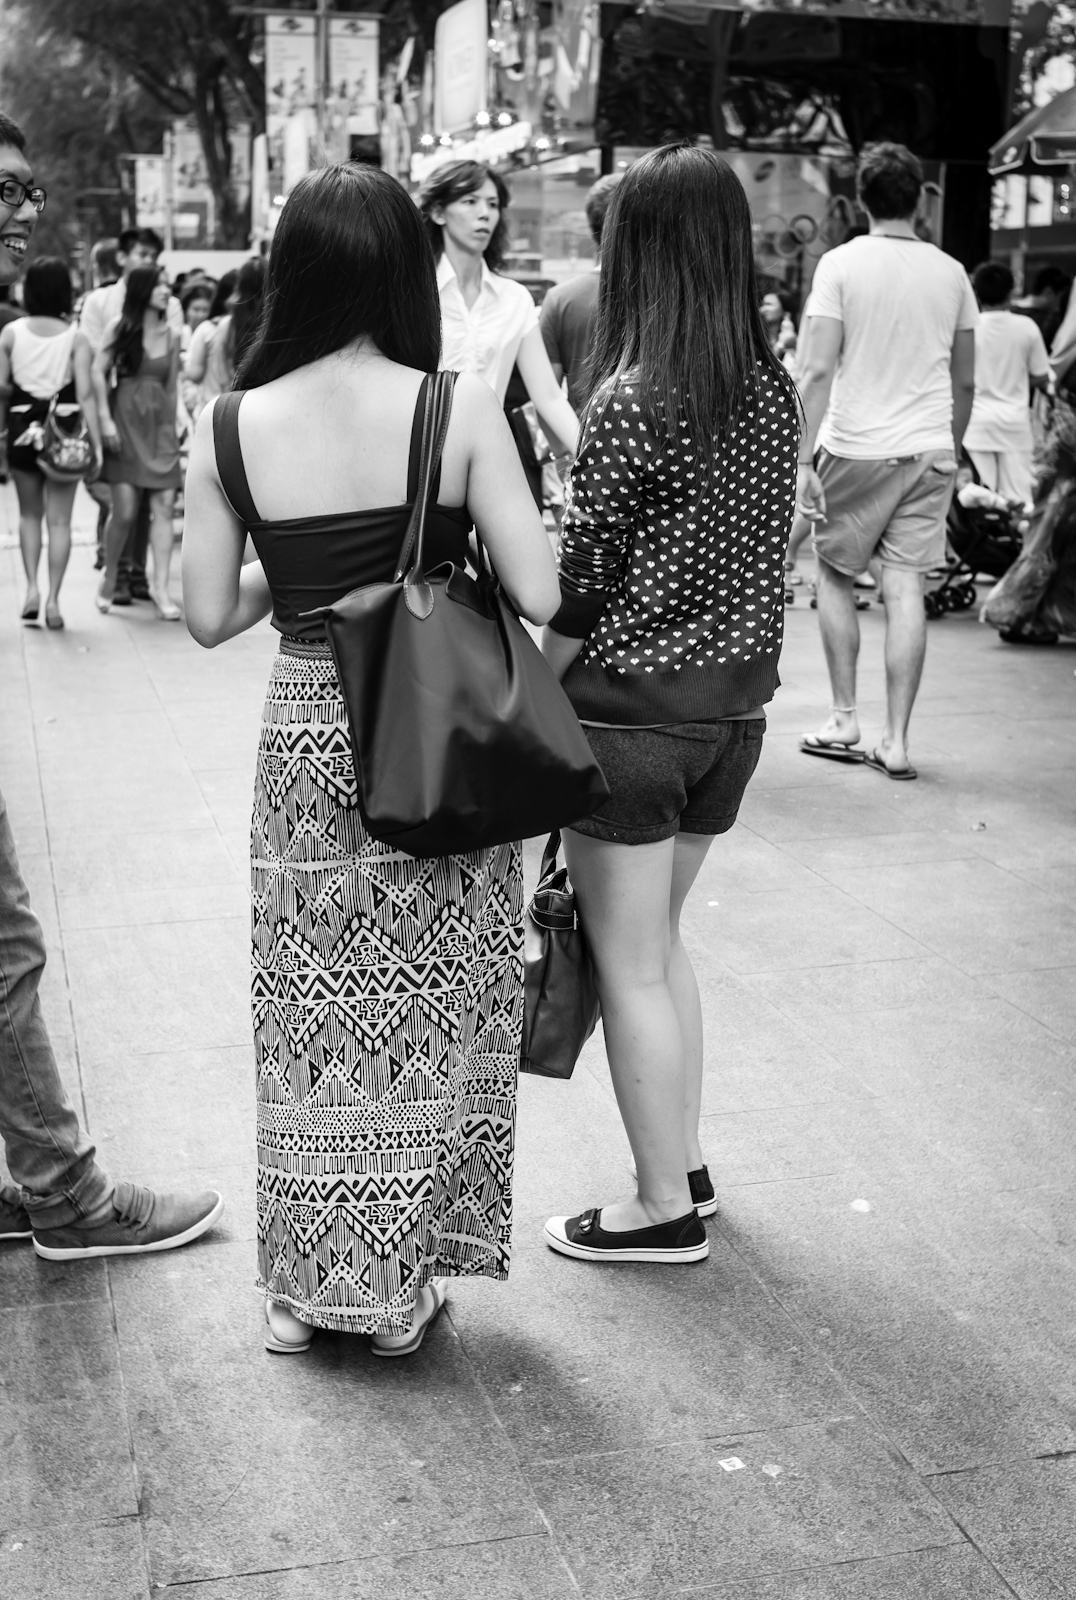 Girl in sleeveless top and long dress, and a girl in long-sleeved top and shorts